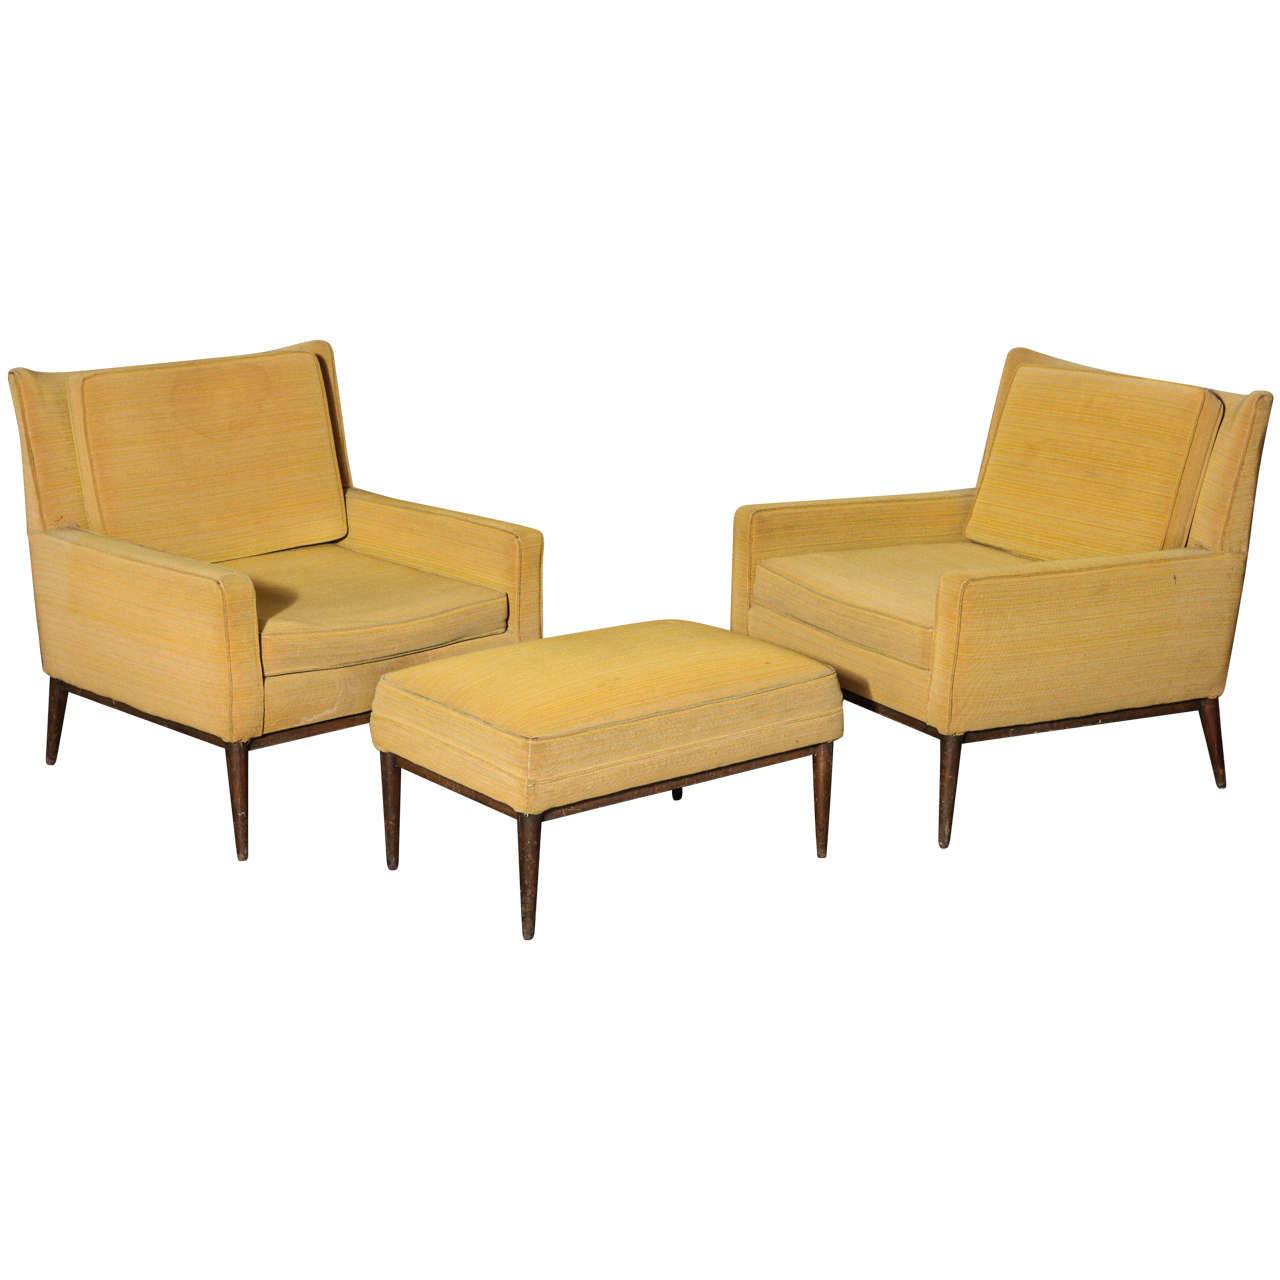 Paul McCobb Lounge Chairs and Ottoman at 1stdibs